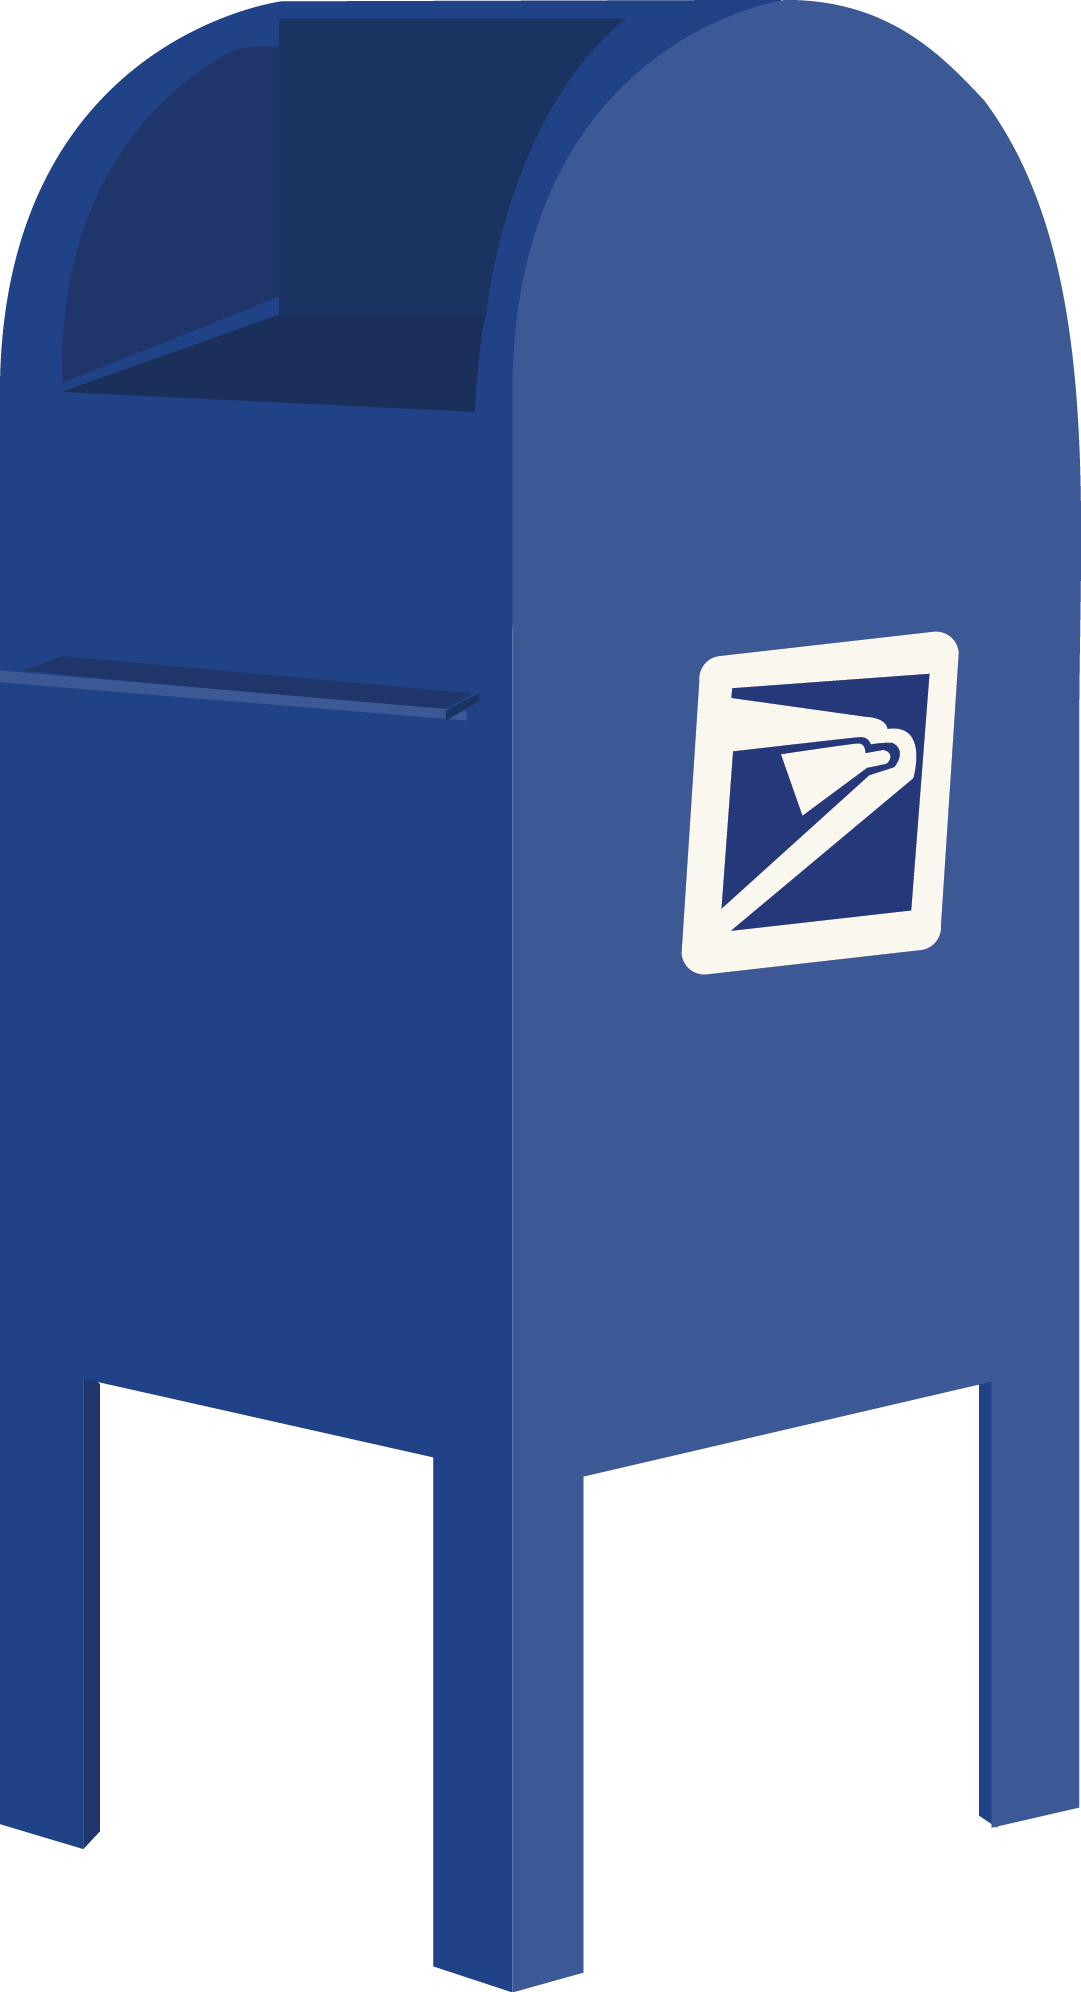 Mailbox clipart blue mailbox. Letters to my year